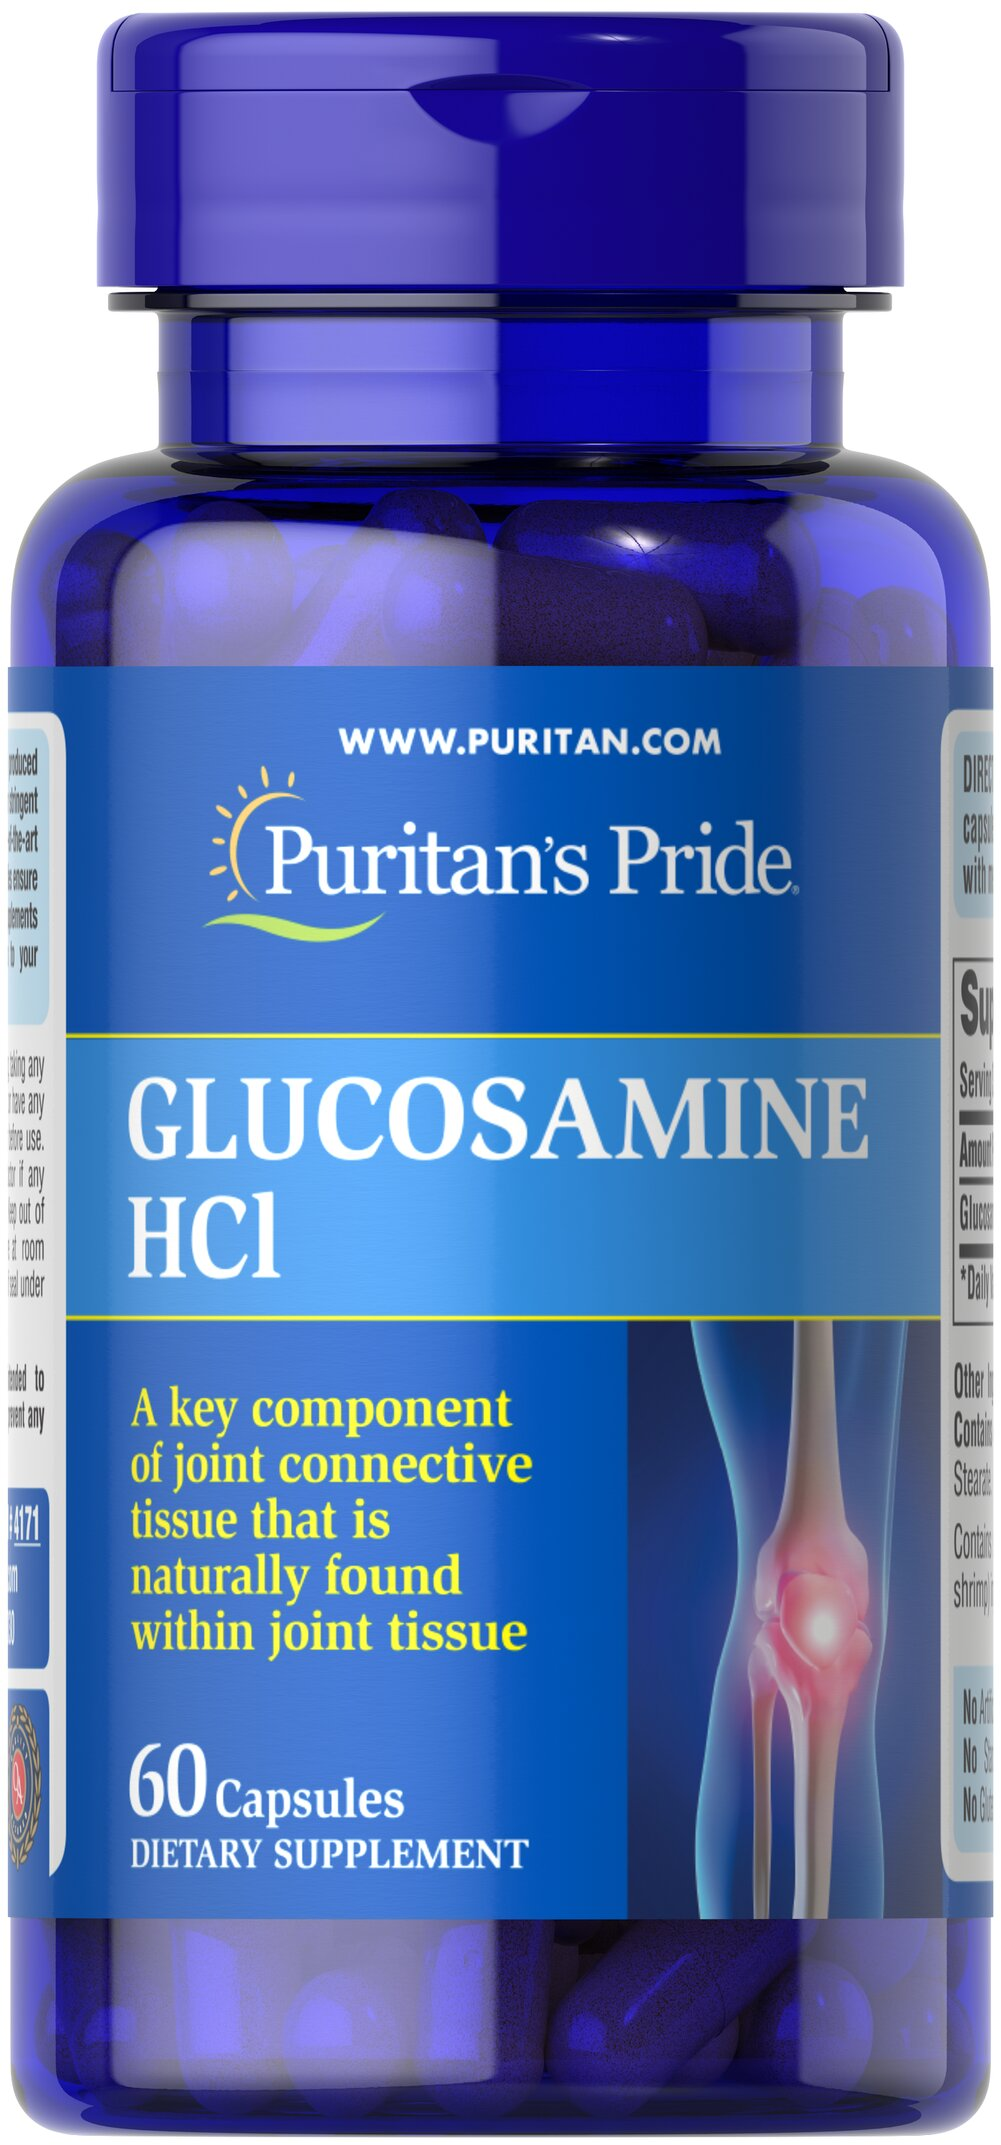 Glucosamine Sulfate 1000 mg <p>Promotes Healthy Joints**</p>  <p>Supports Cartilage Maintenance**</p>  <p>As a key ingredient in cartilage, Glucosamine plays an important role in good joint health and helps promote healthy joints and cartilage maintenance.** Studies indicate that Glucosamine provides the building blocks for constructing cartilage.** Our Glucosamine Sulfate capsules are perfect for anyone desiring extra nutritional support for cartilage and joints.**